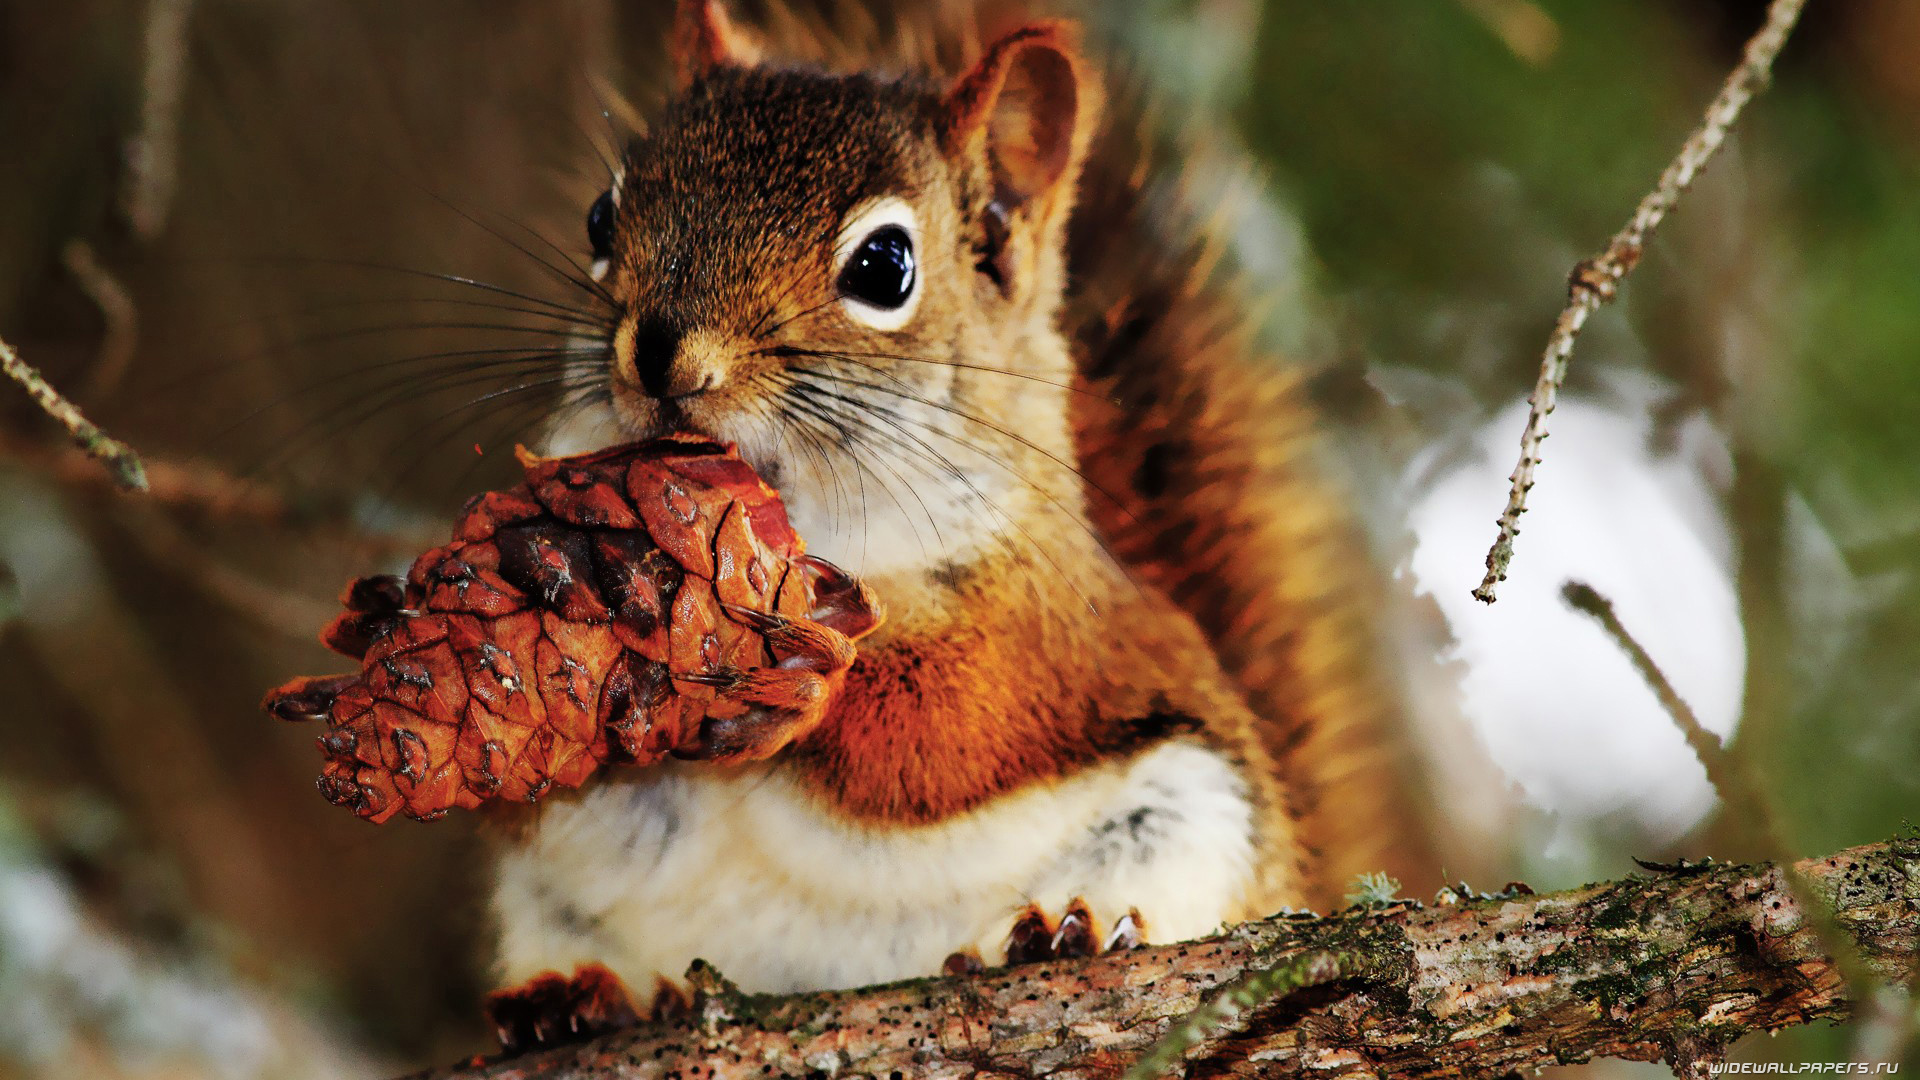 http://wp.widewallpapers.ru/2k/animals/squirrels/1920x1080/squirrel-wallpaper-1920x1080-005.jpg